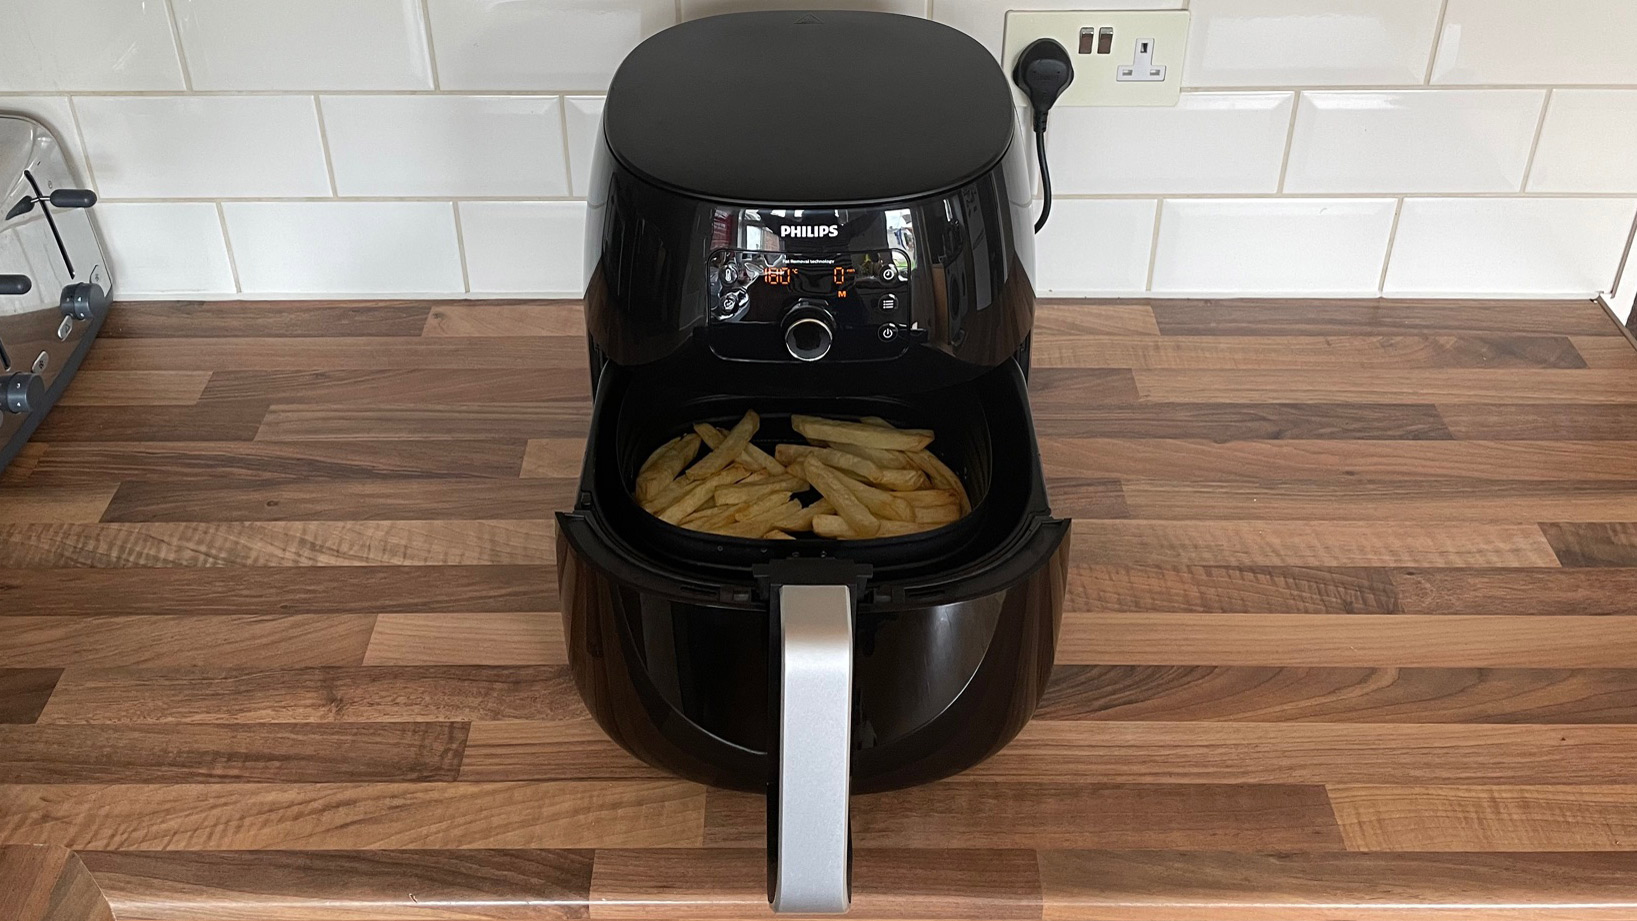 Philips Airfryer XXL HD9650/99 open with fries that have just been cooked in it